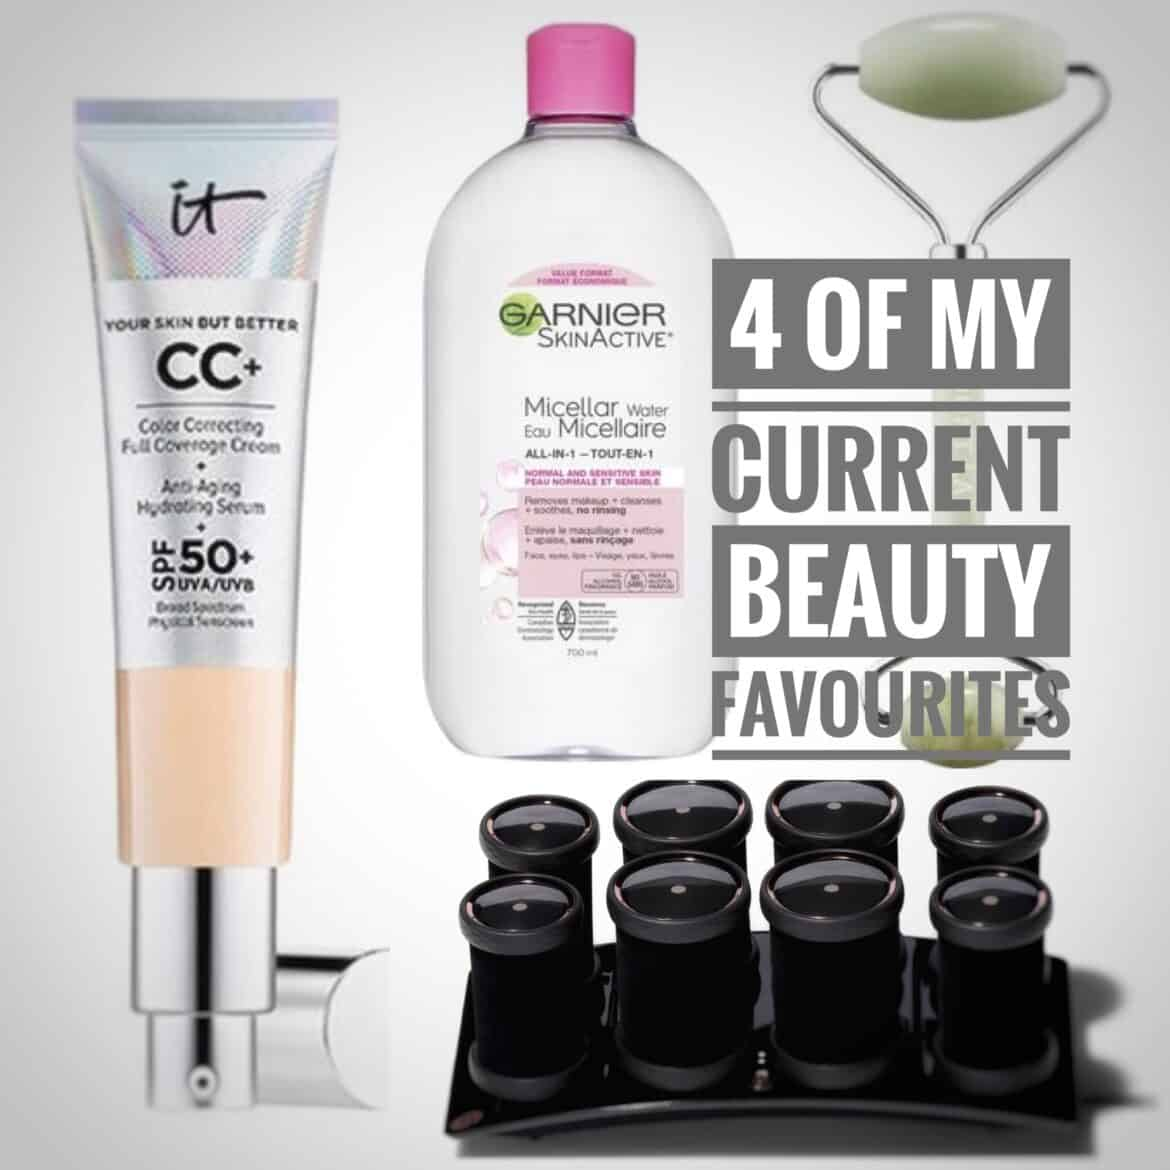 4 Of My Current Beauty Favourites